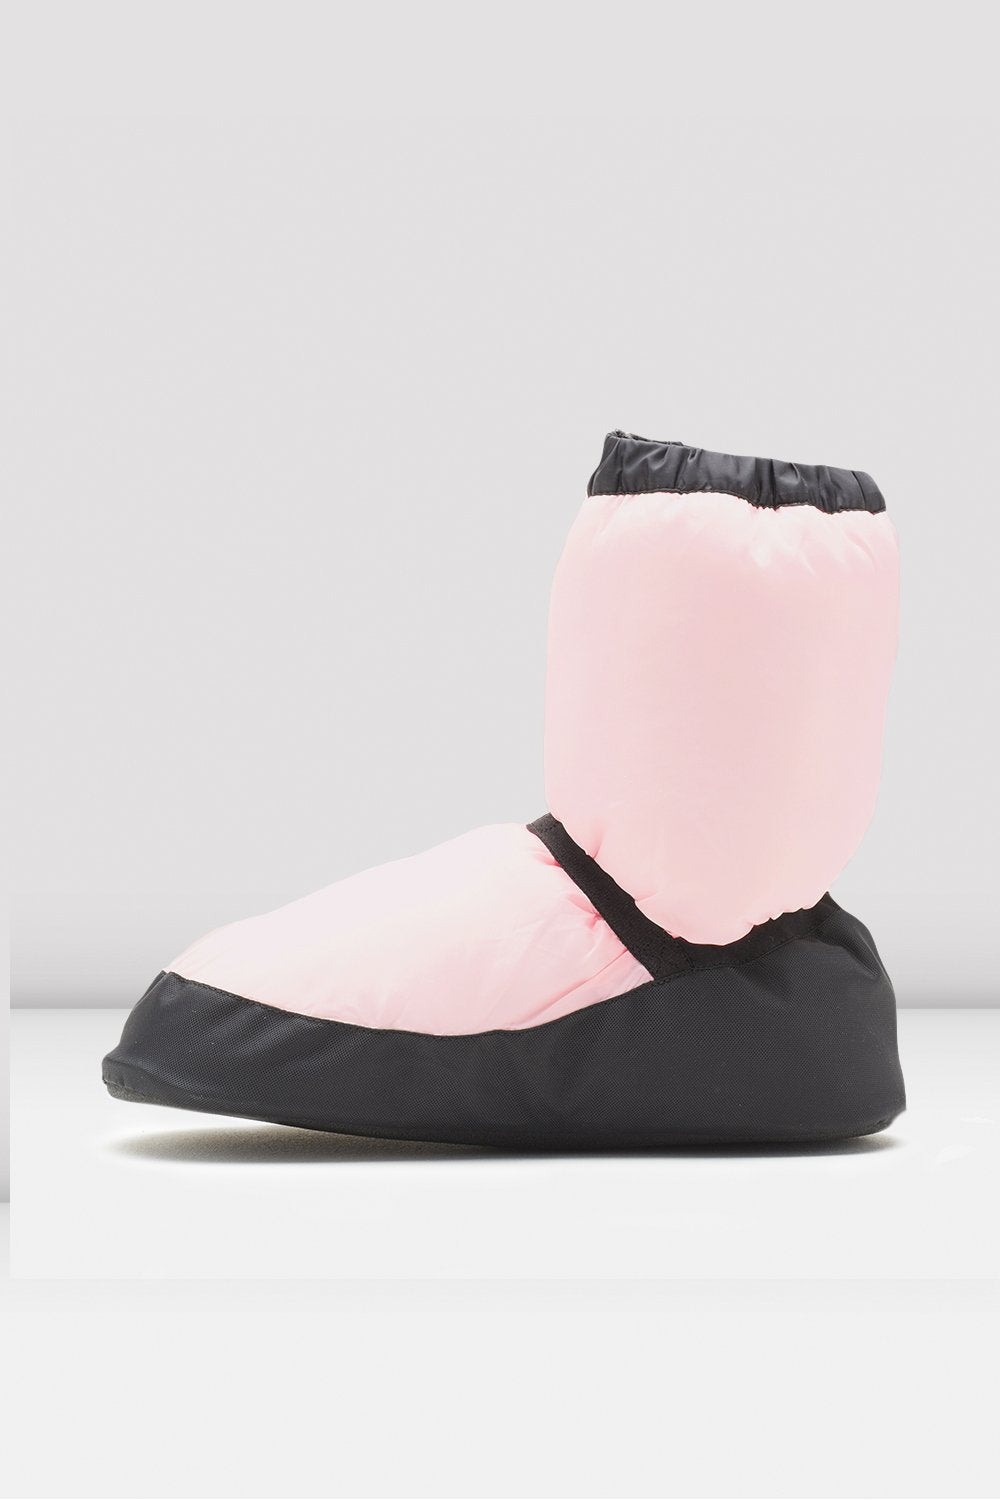 Candy pink nylon Bloch Adult Warm Up Booties single shoe side view